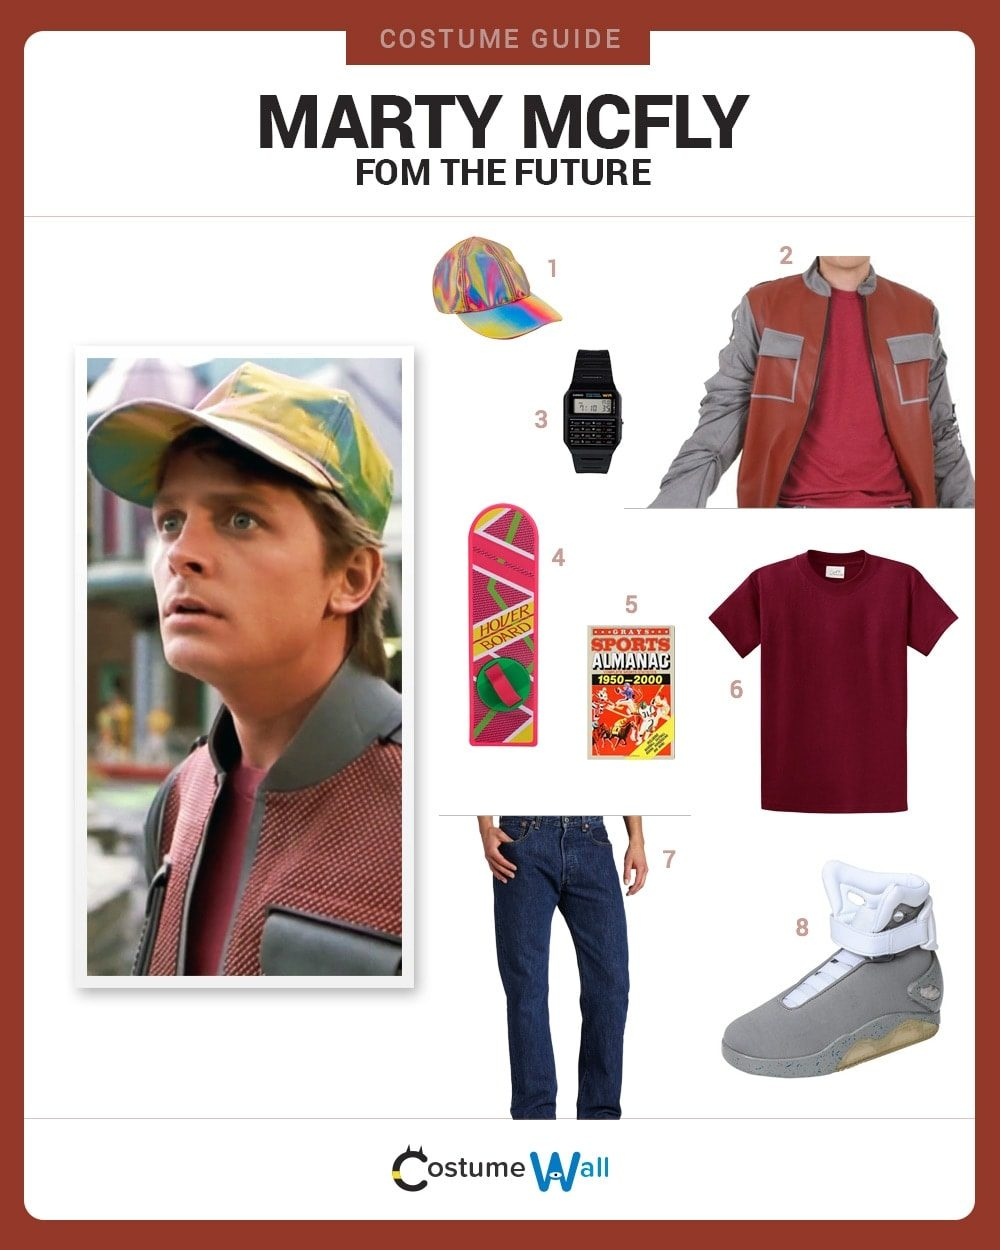 Future Marty McFly Costume Guide